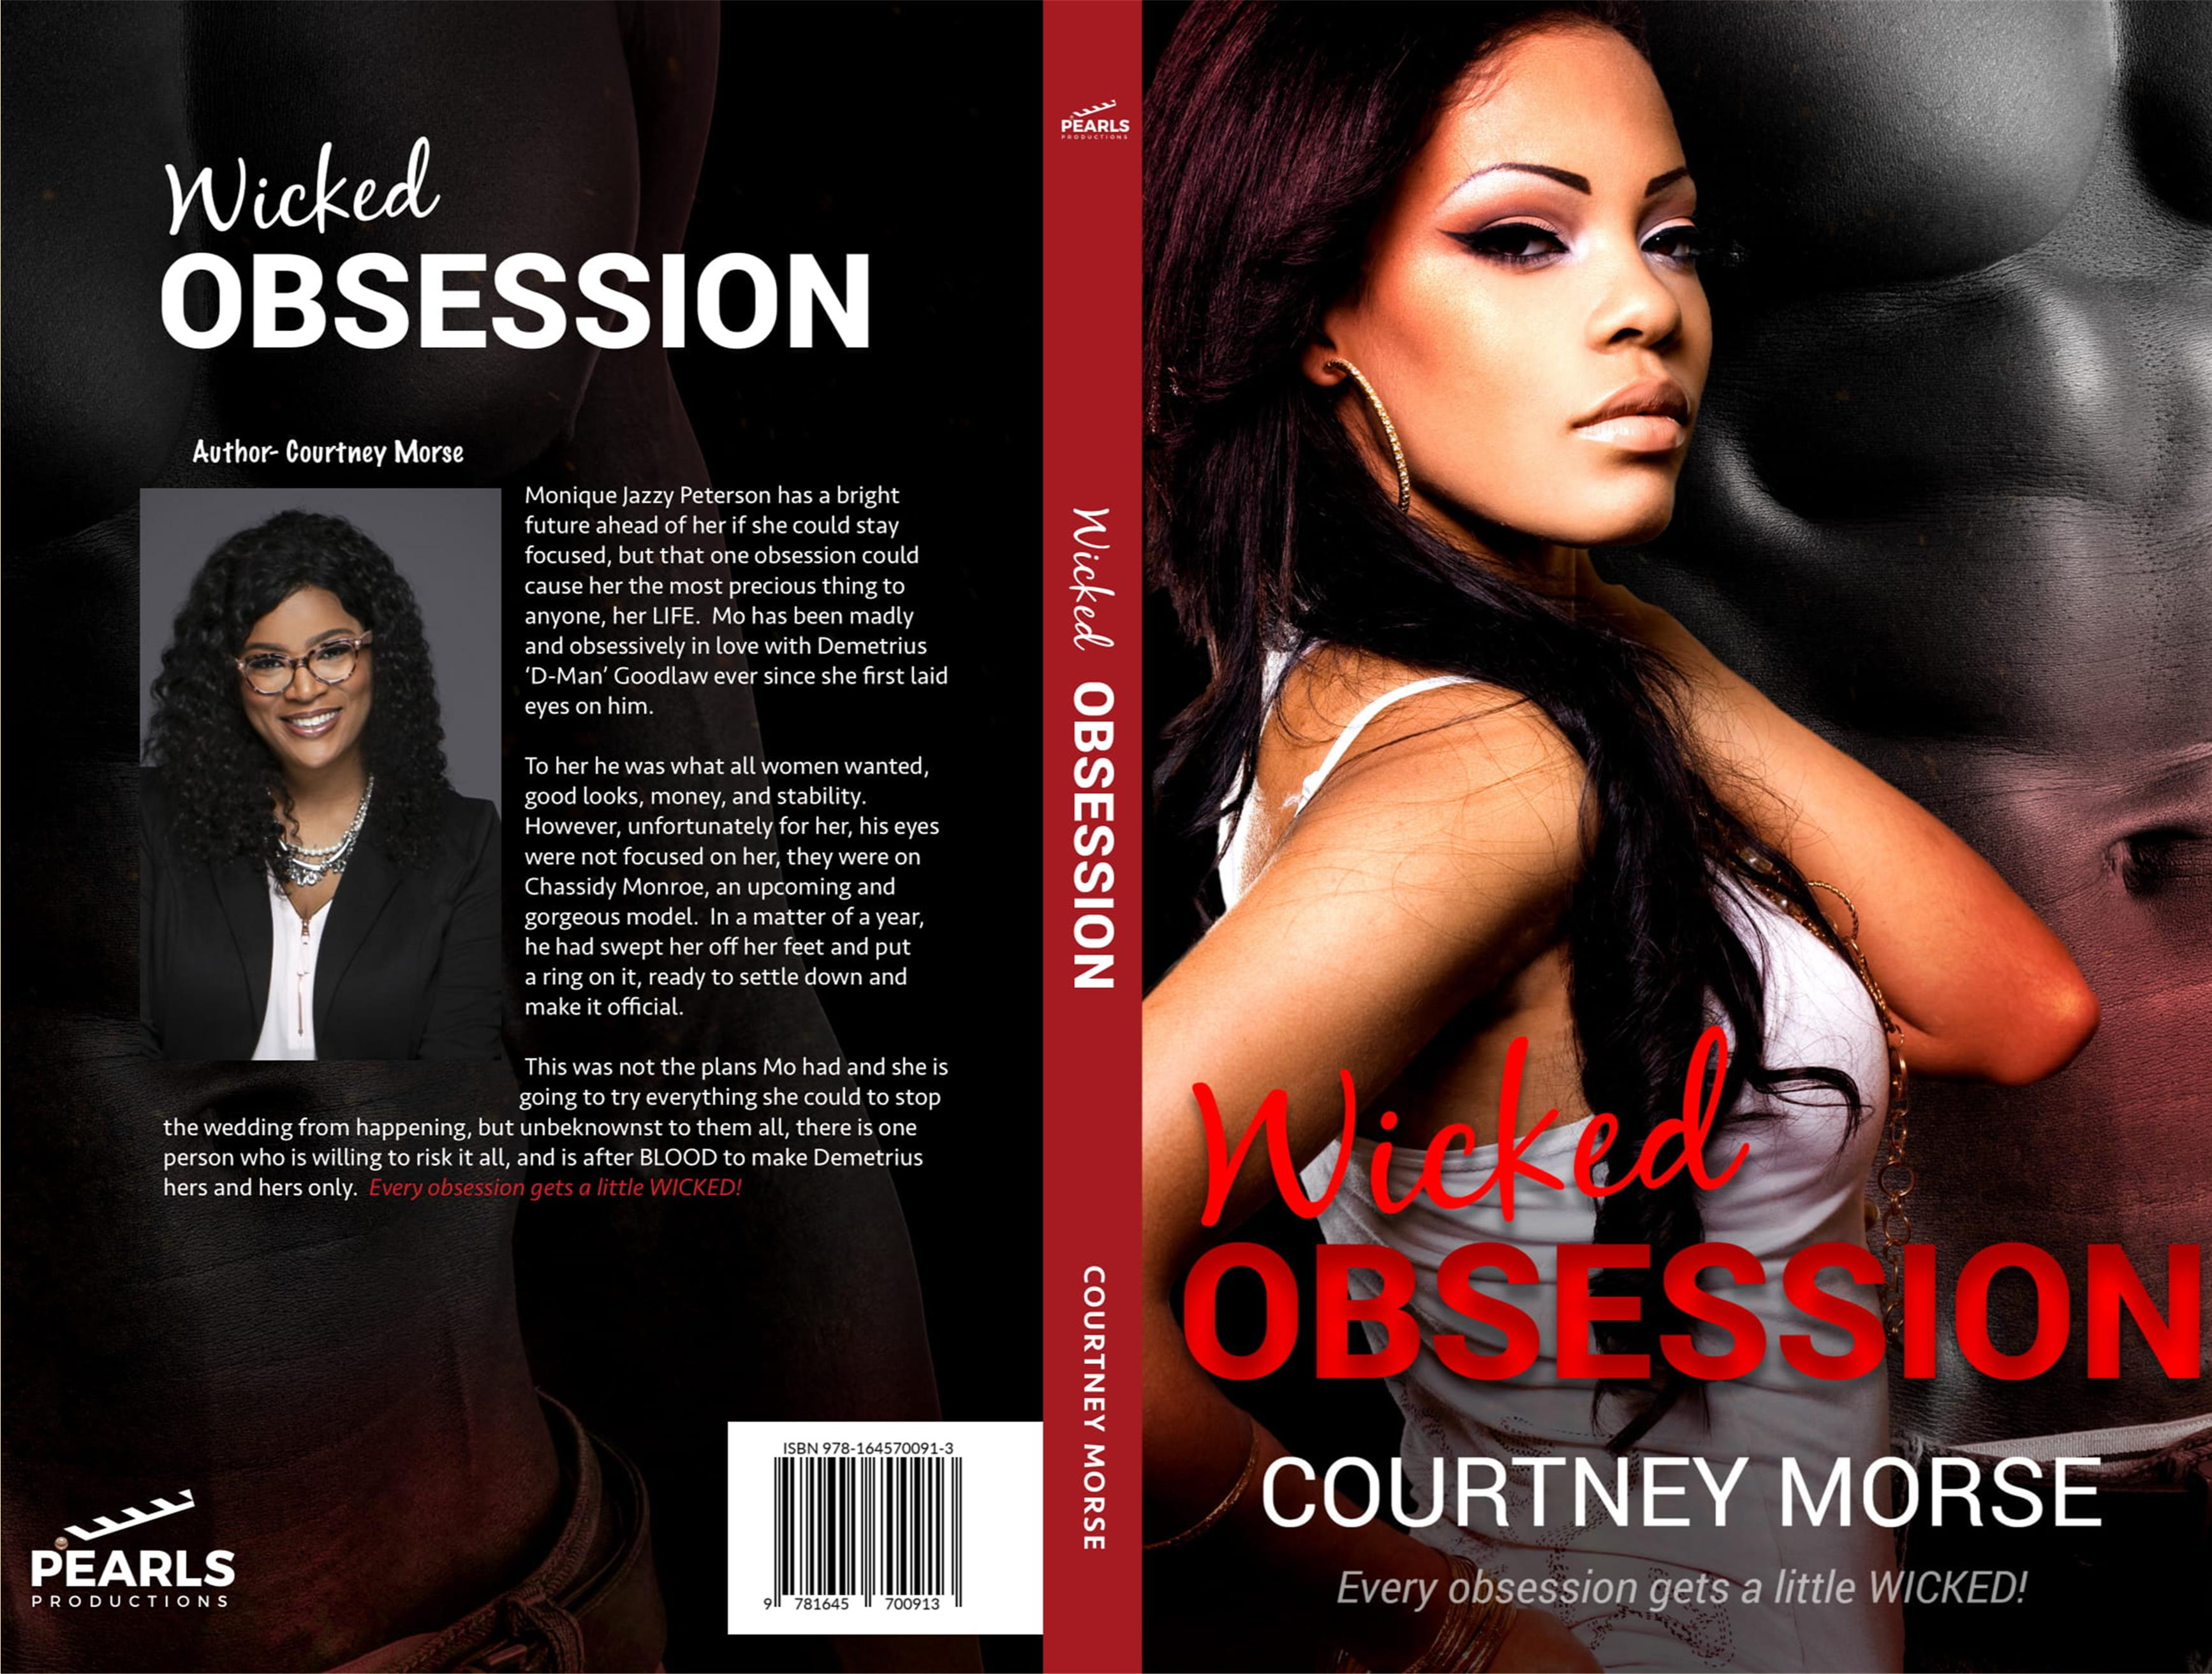 Wicked Obsession cover image